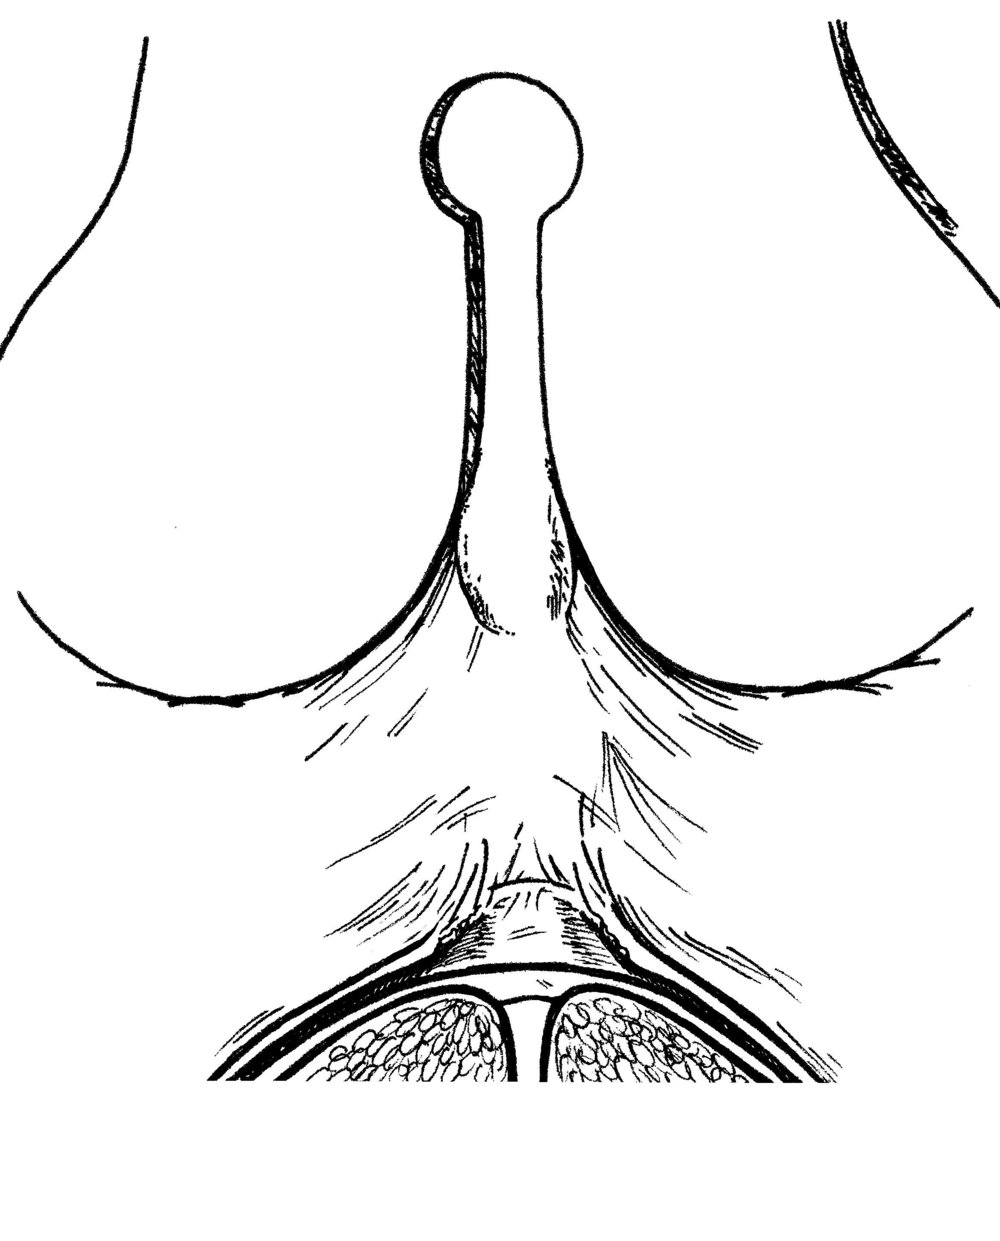 Release of the mucous membrane on either side of the central window